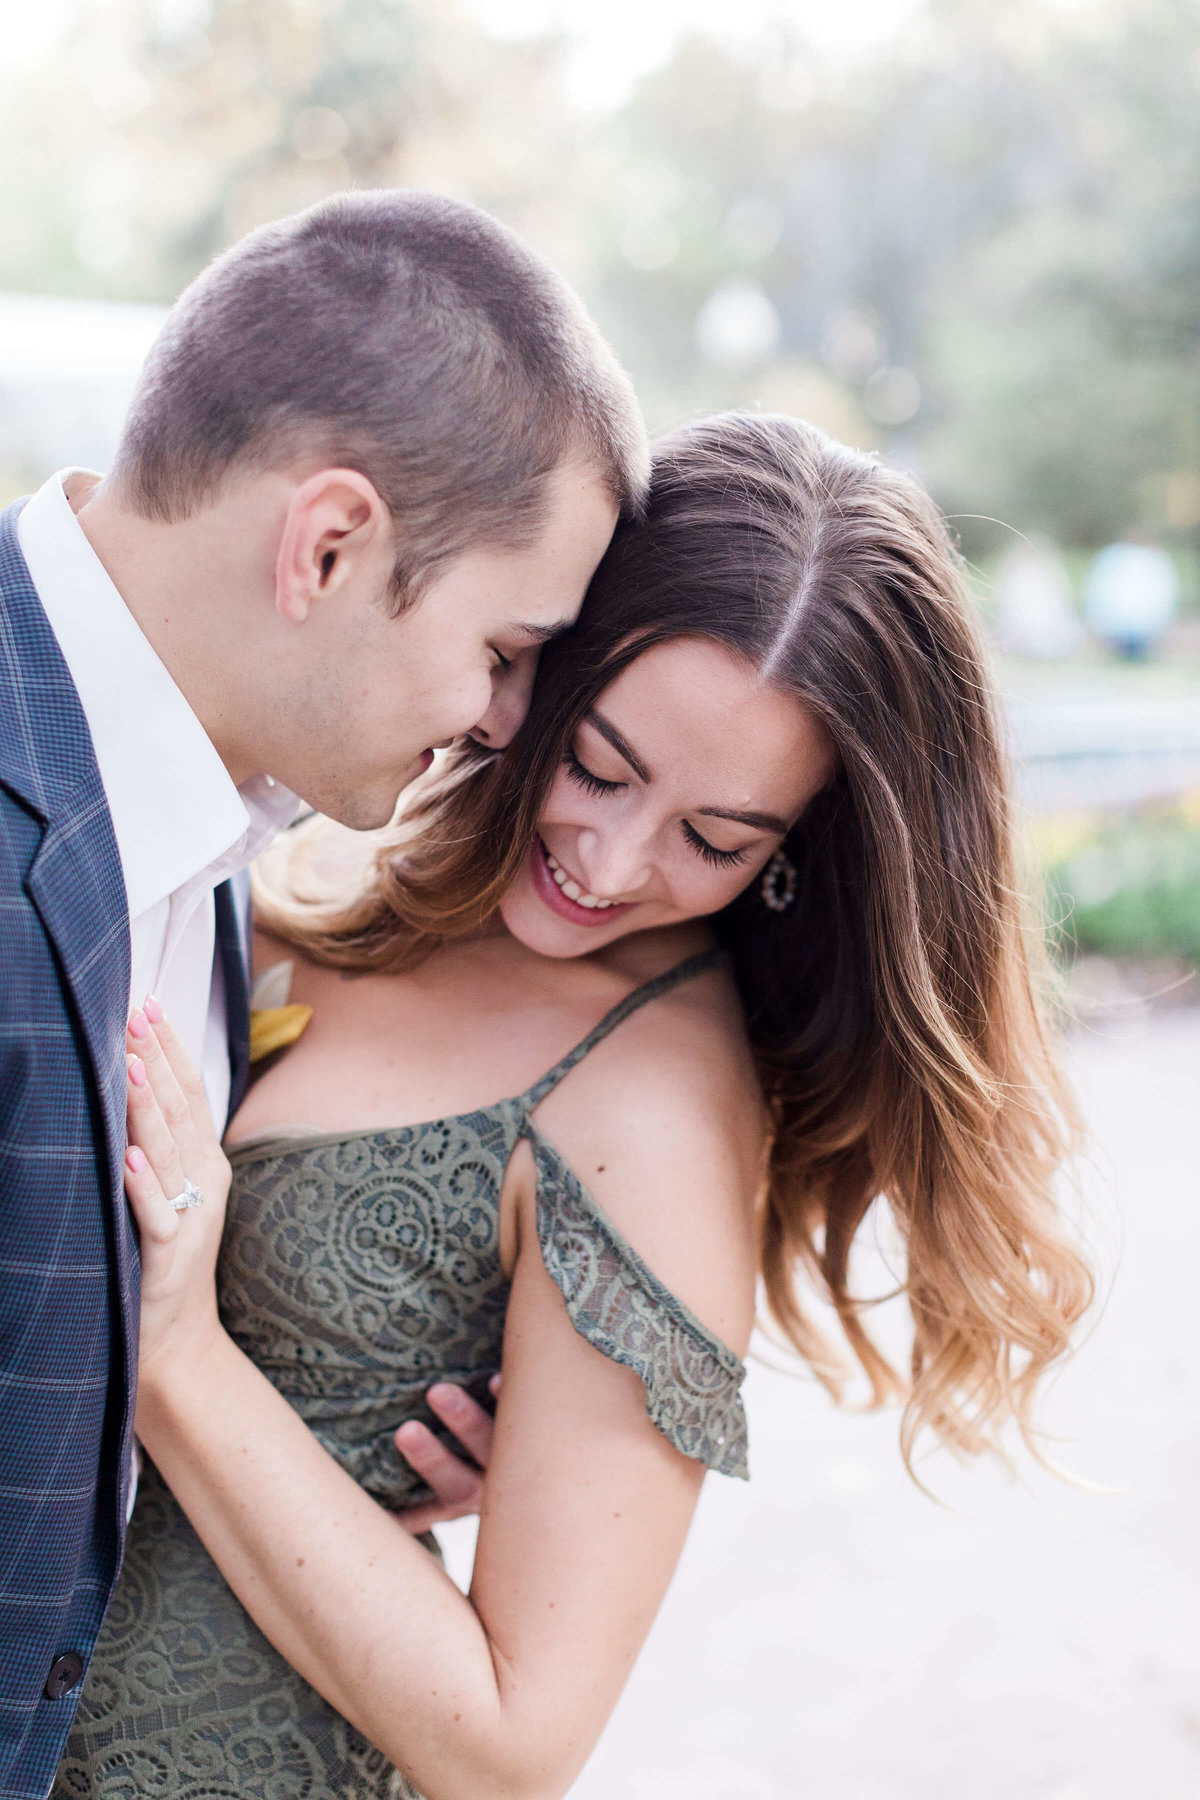 apt-b-photography-savannah-surprise-proposal-photographer-engagement-proposal-photography-10